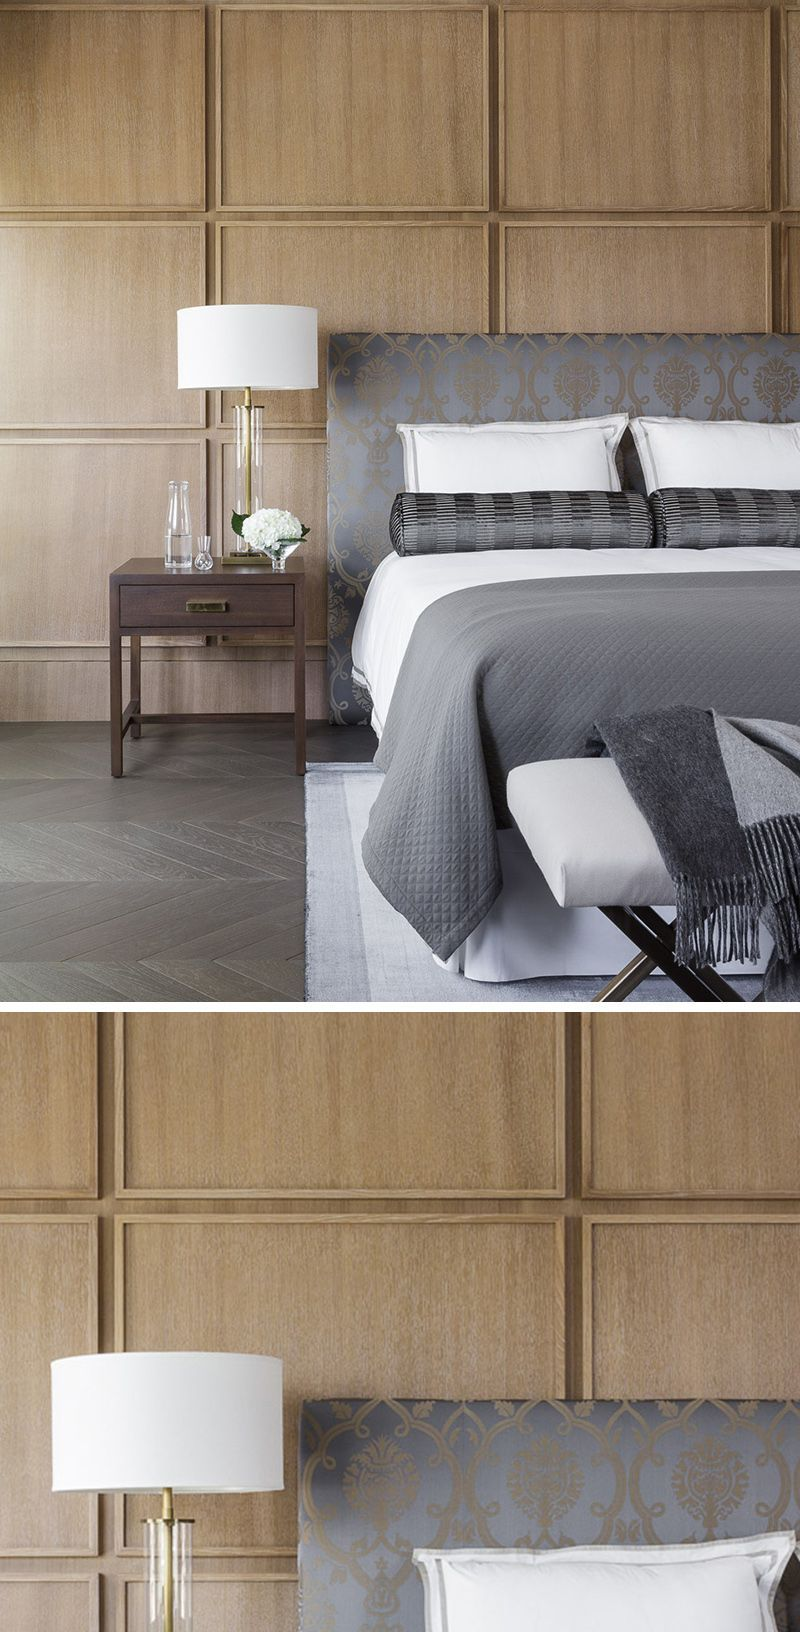 This Bedroom Uses Square Wood Panels To Create A Modern Accent Wall Behind The Bed Bedroom Design Inspiration Contemporary Bedroom Modern Bedroom Design